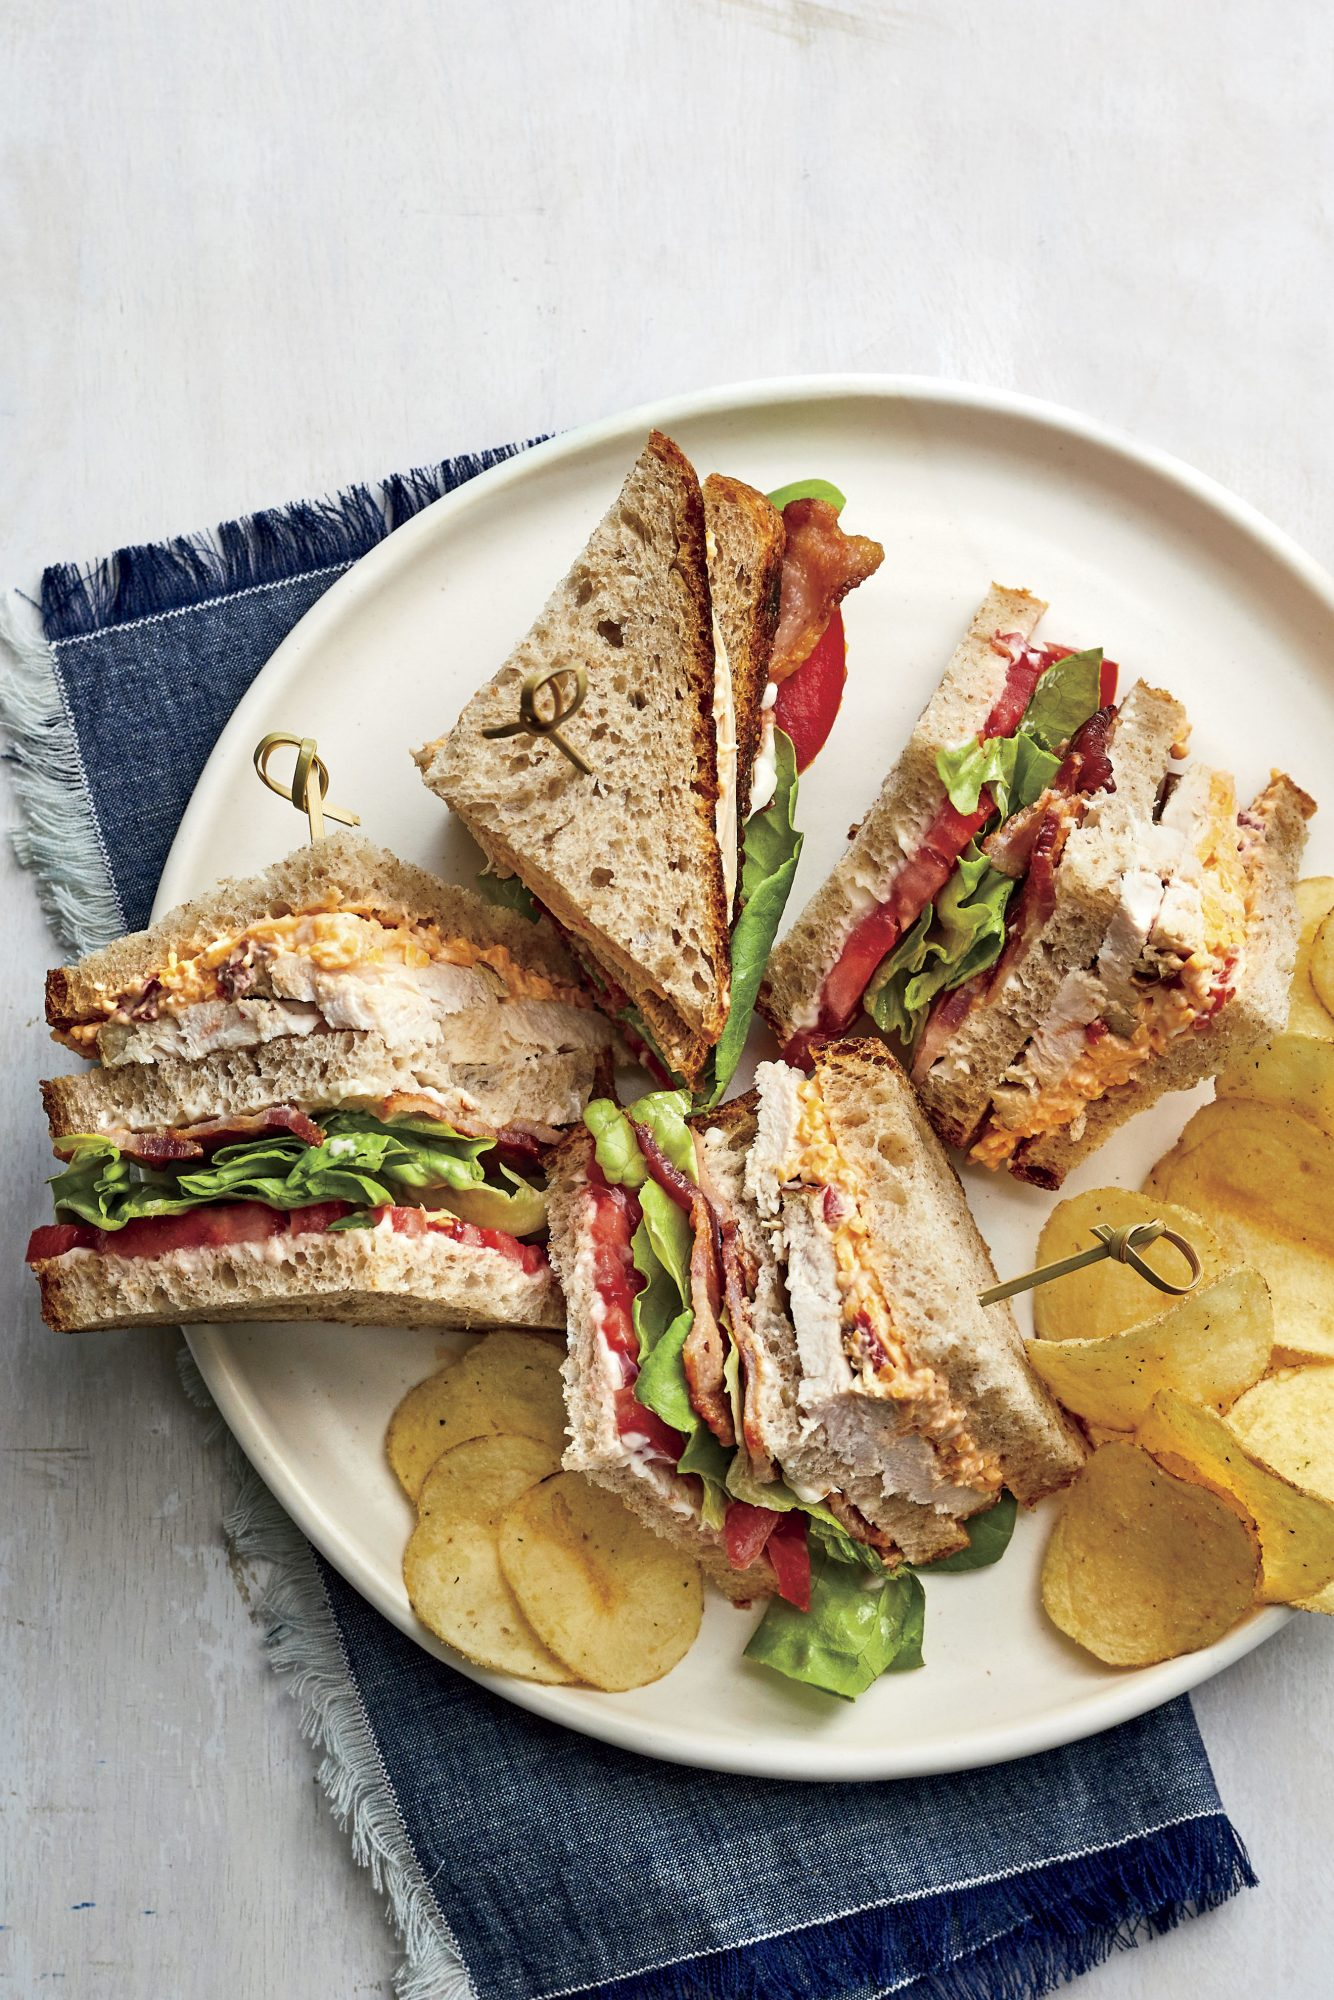 Turkey and Pimiento Cheese Club Sandwich